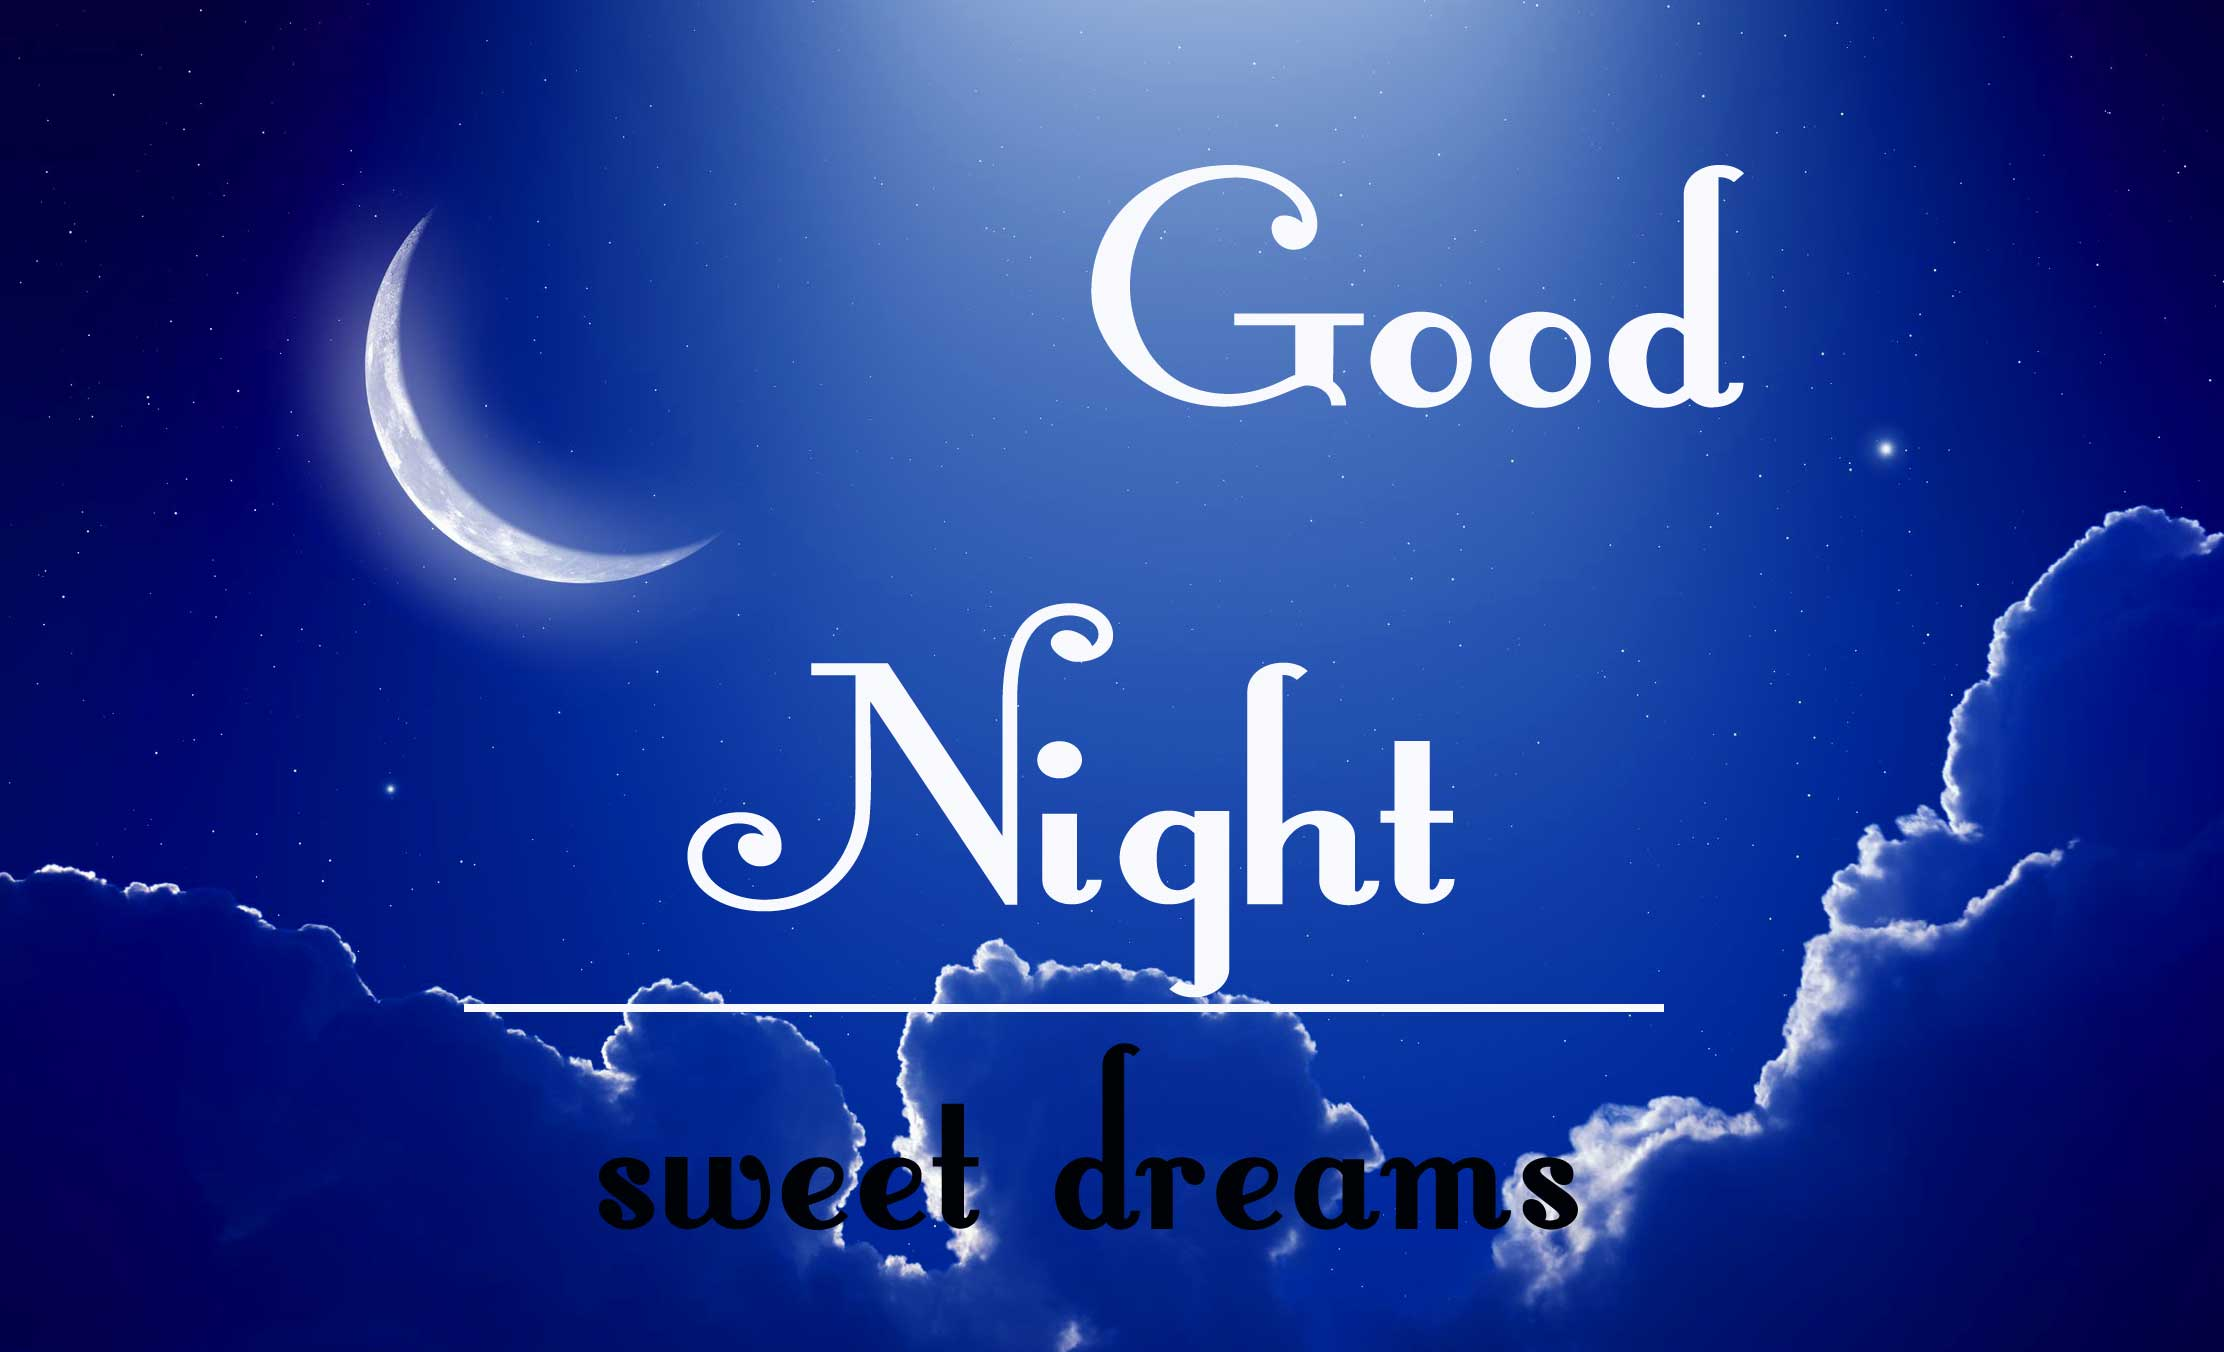 Free good night Images Wallpaper In 2021